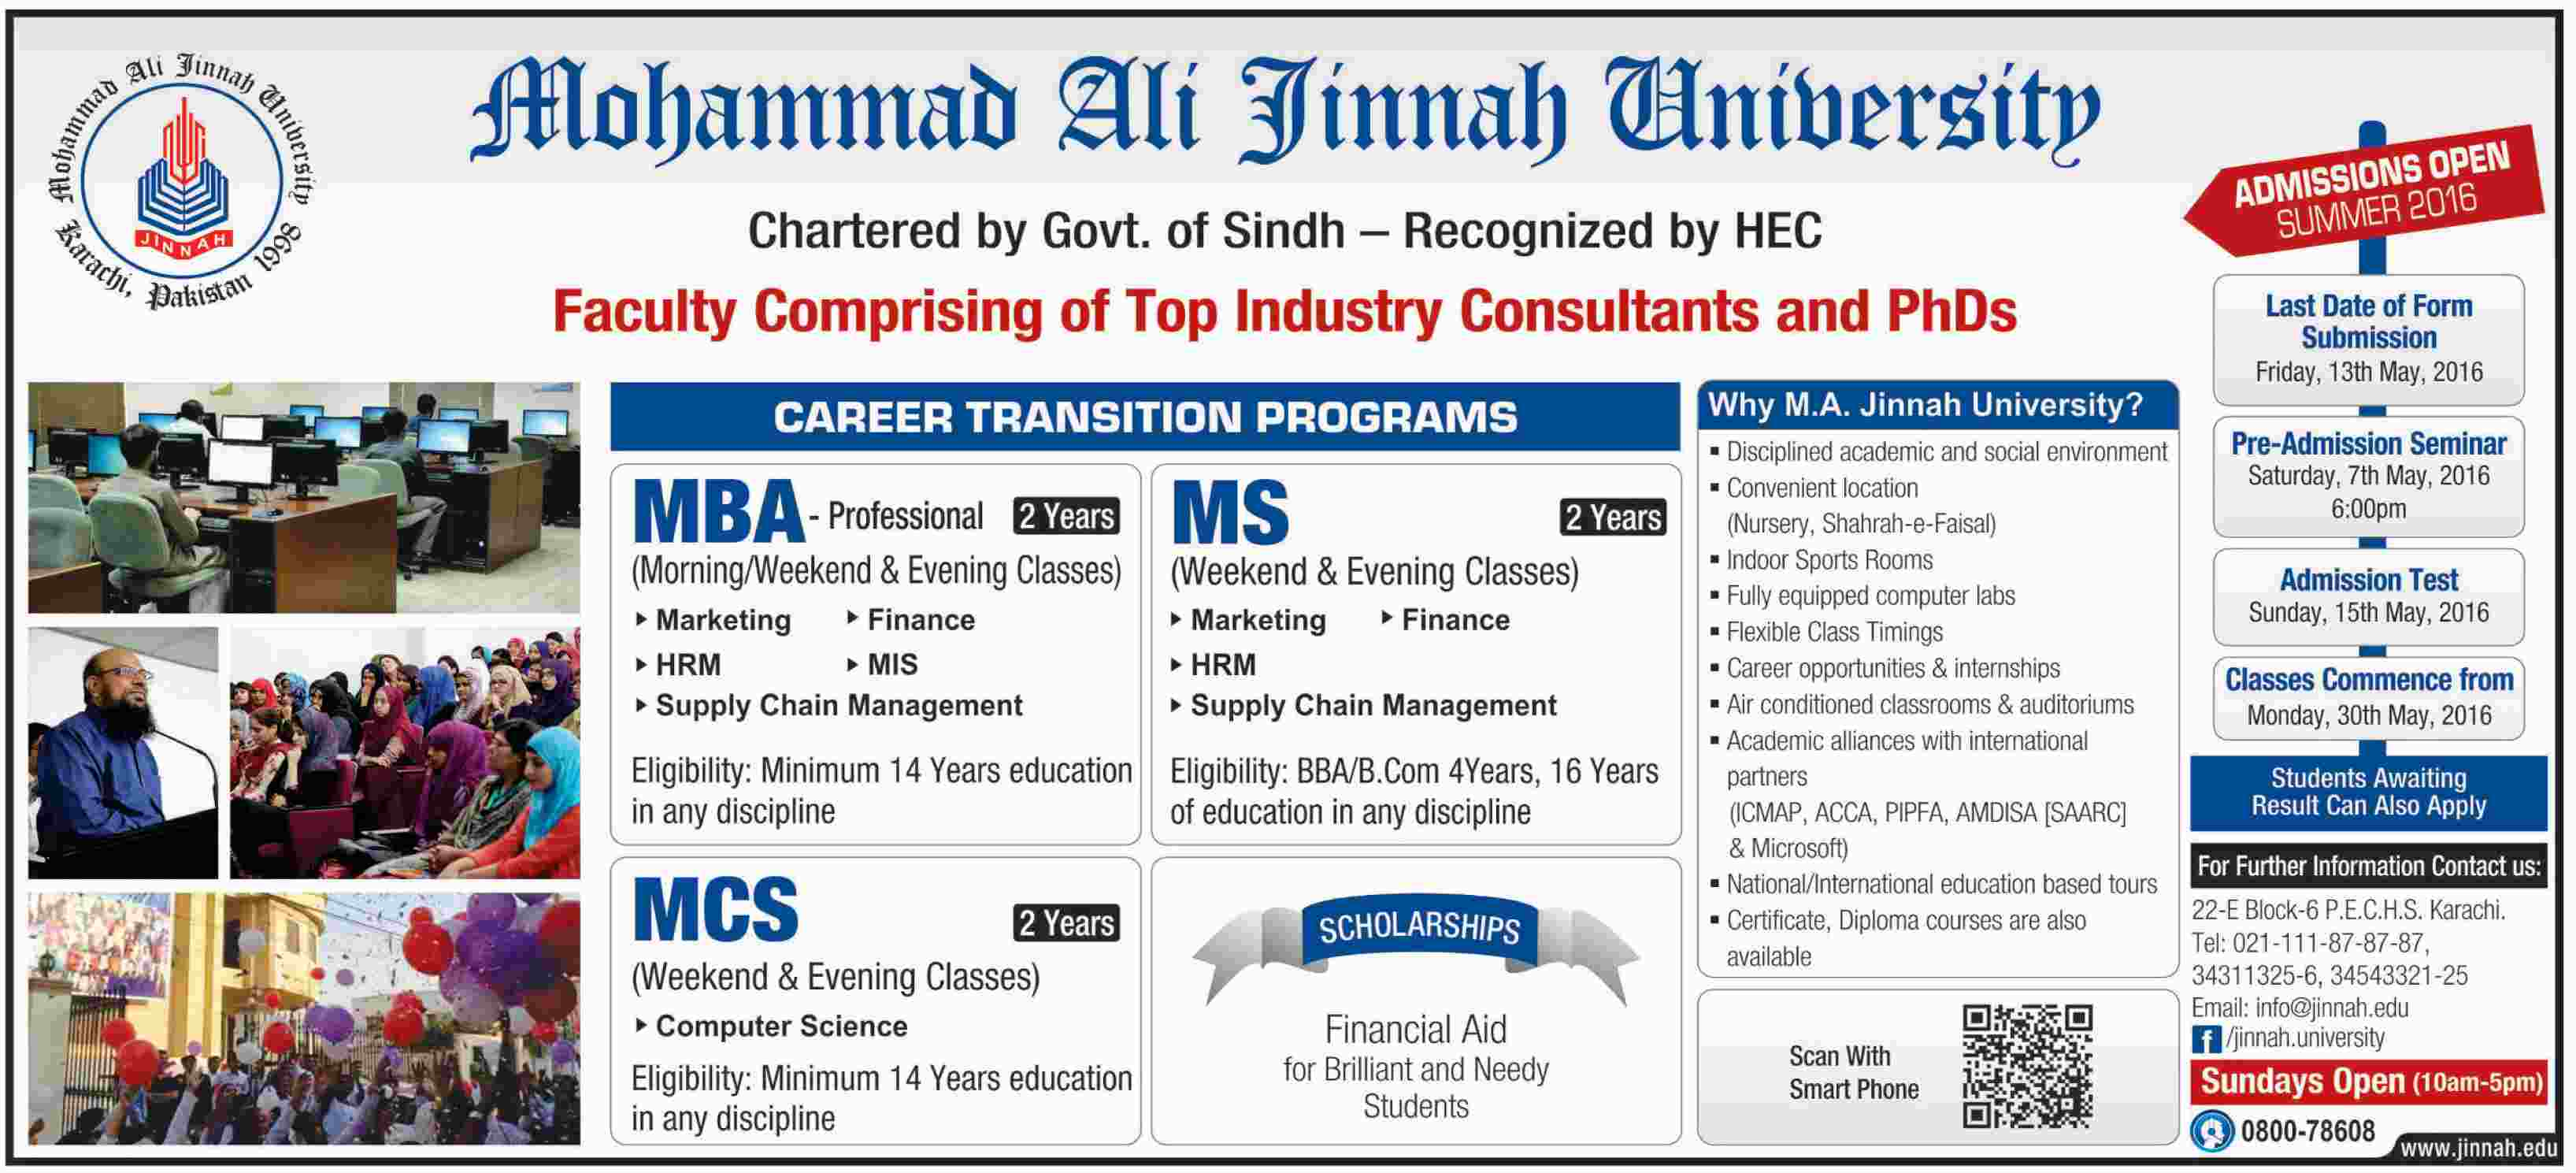 Mohammad Ali Jinnah University Admissions 2016